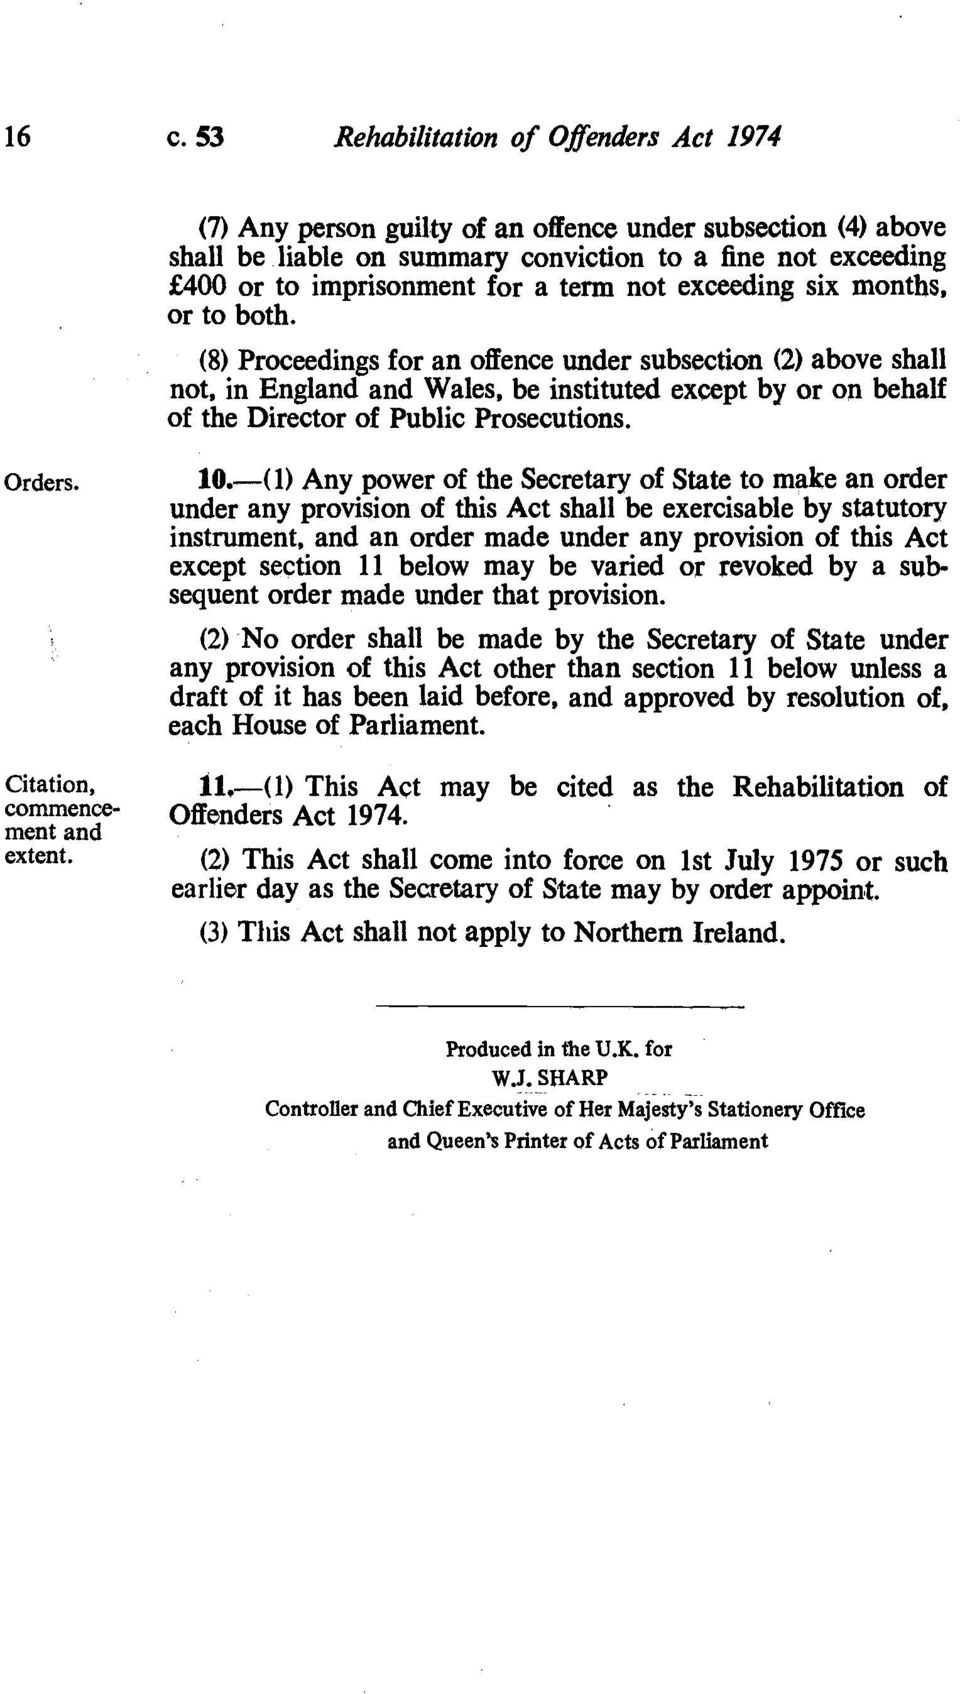 (8) Proceedings for an offence under subsection (2) above shall not, in England and Wales, be instituted except by or on behalf of the Director of Public Prosecutions. Orders. 10.